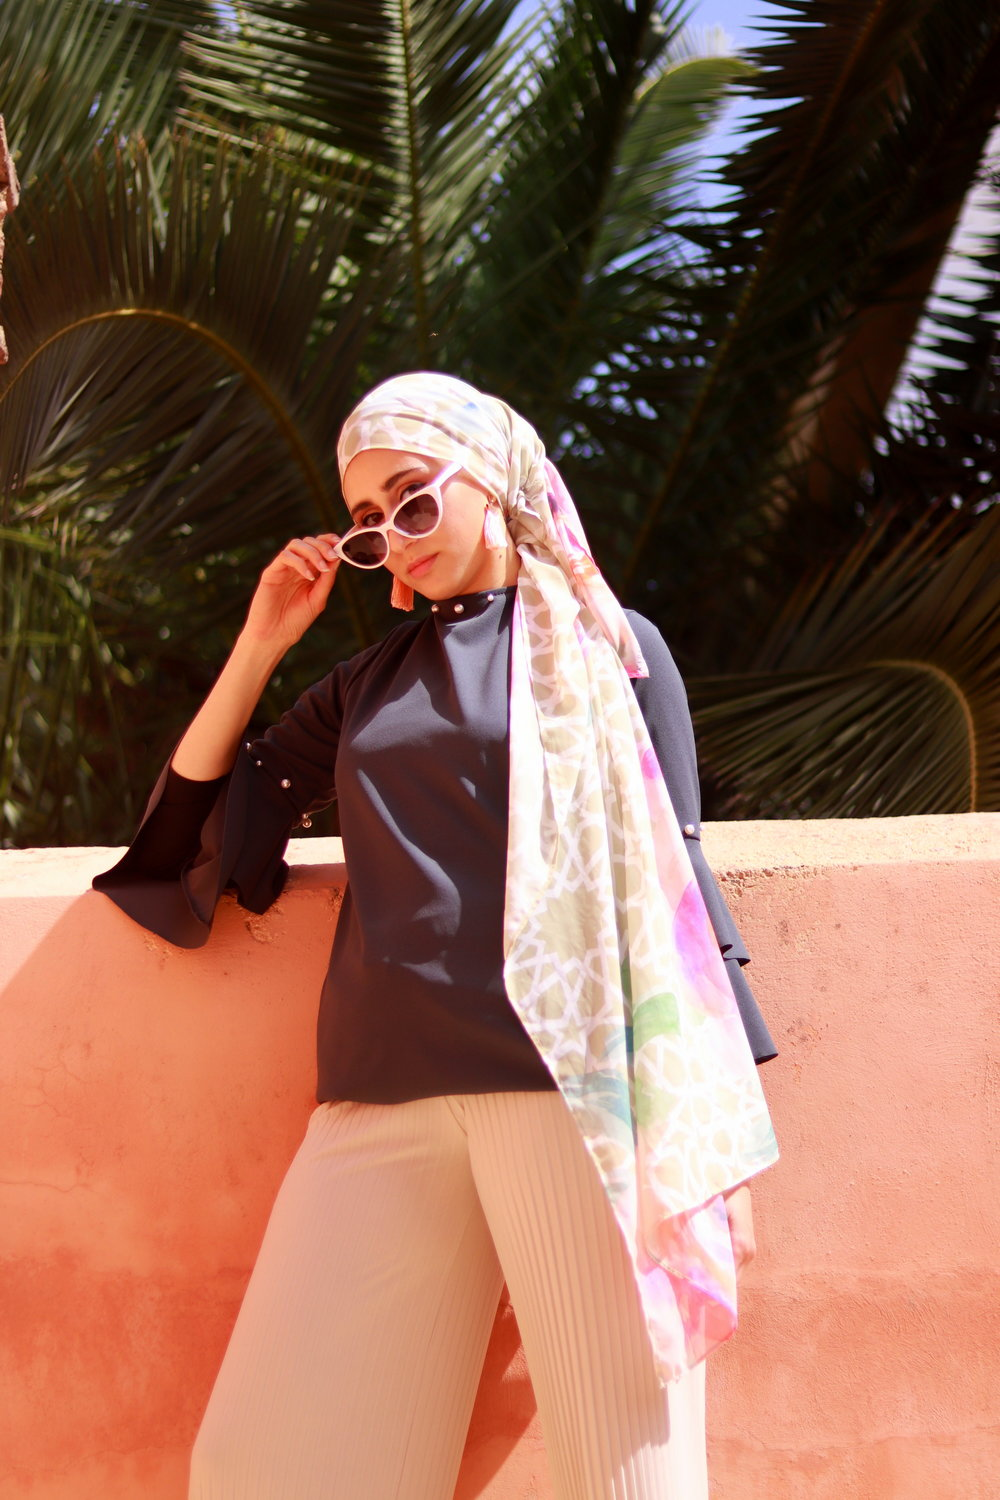 how to style scarf outifit  karama by hoda arabesque scarf, moroccan scarf, arabesque lifestyle, boho chic boho outfit, geometric scarf mosaic scarf moroccan decor morocco decor nyc, side style scarf